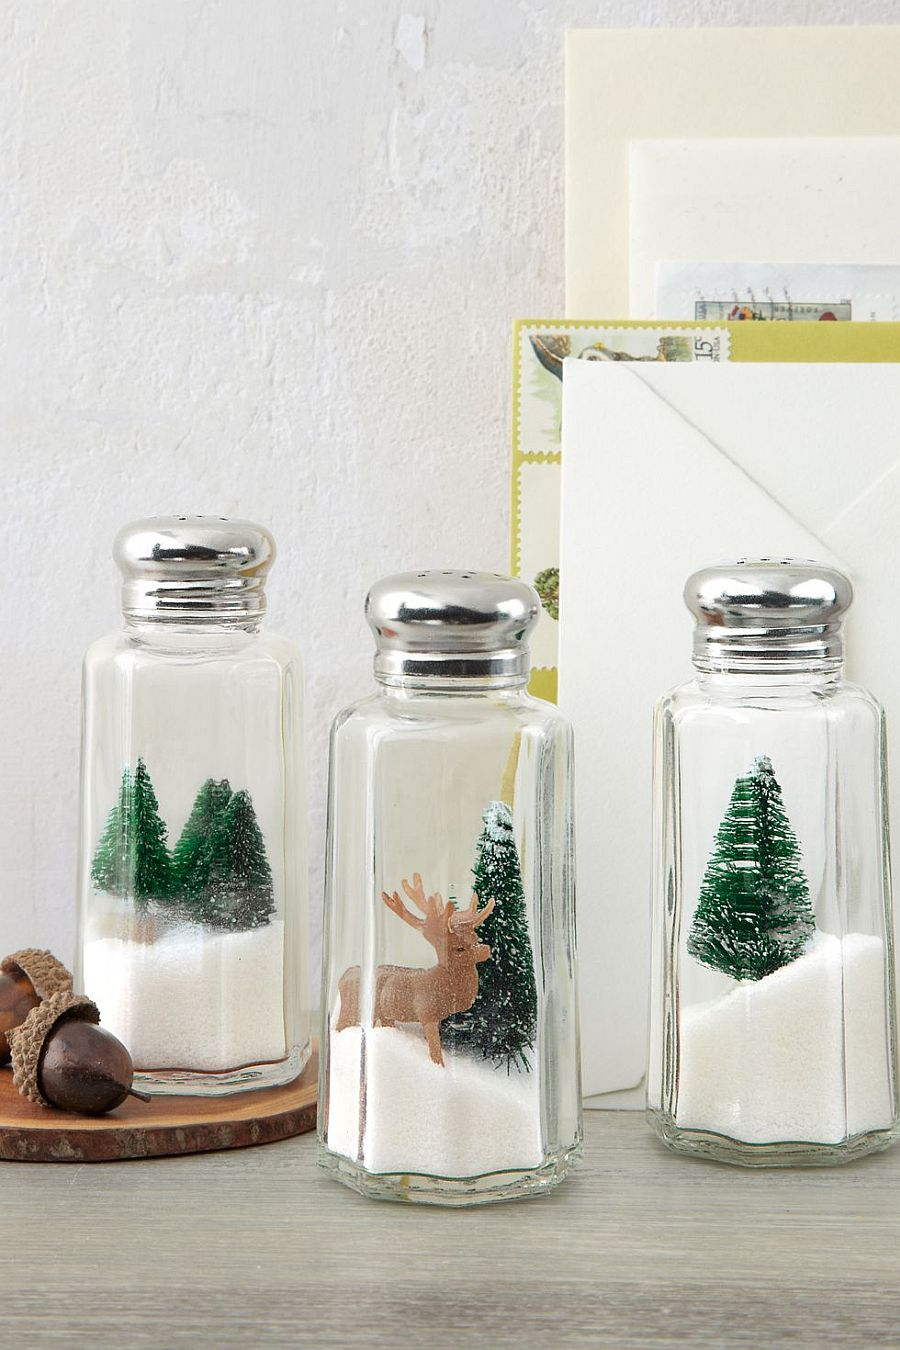 Easy-to-Craft Holiday Shakers Idea